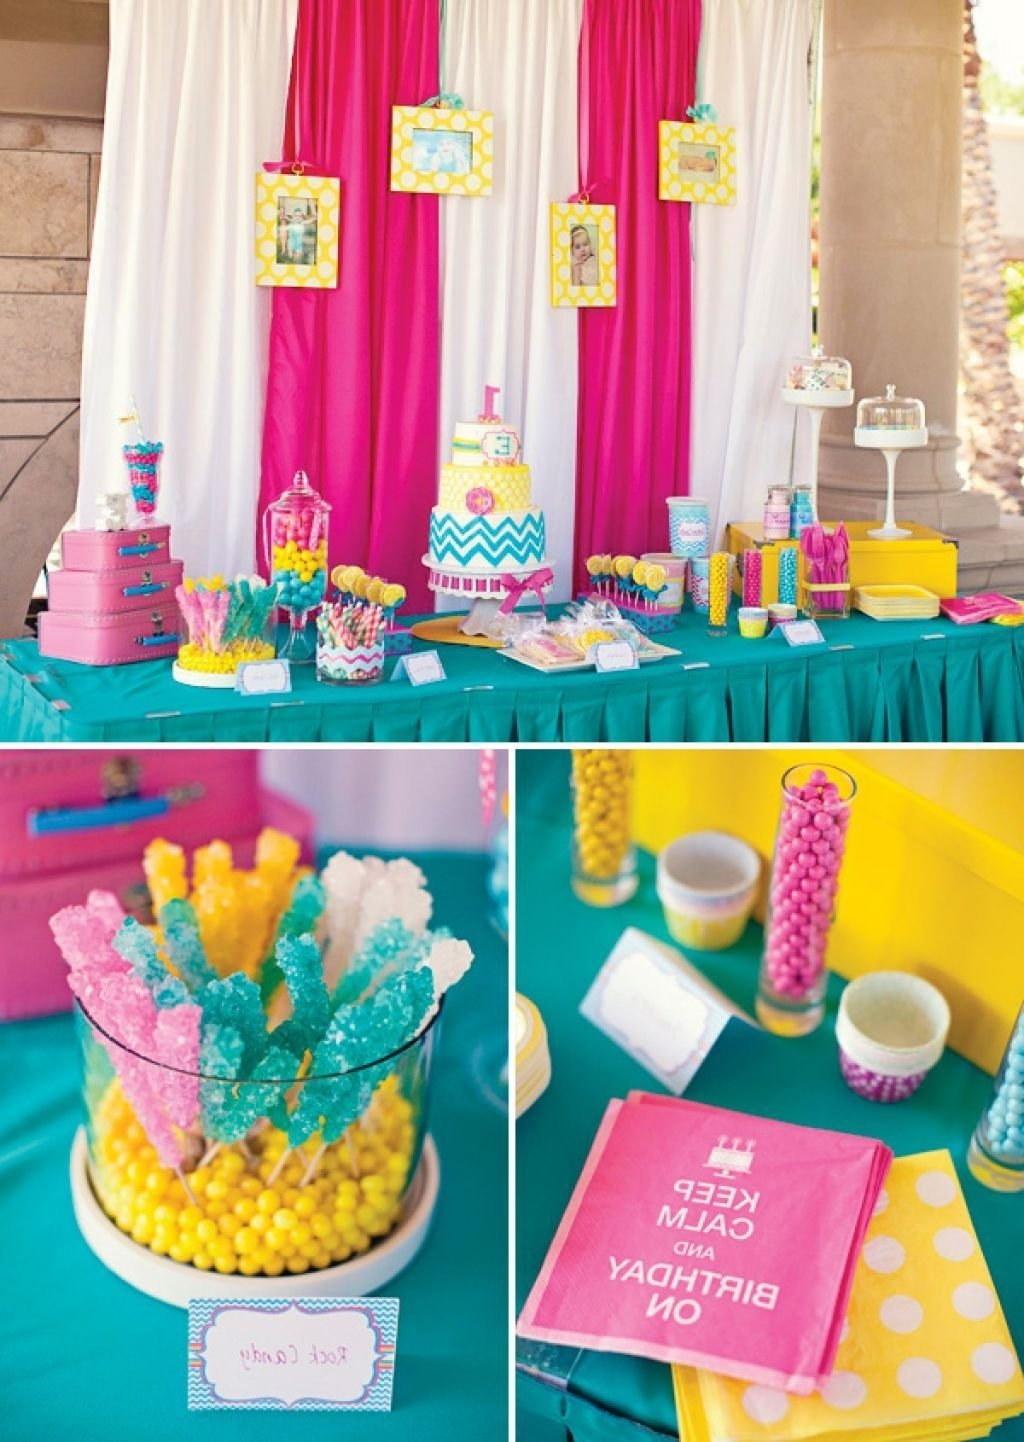 10 Gorgeous 8 Yr Old Birthday Party Ideas Outdoor Decorations Google Search Madeline 14